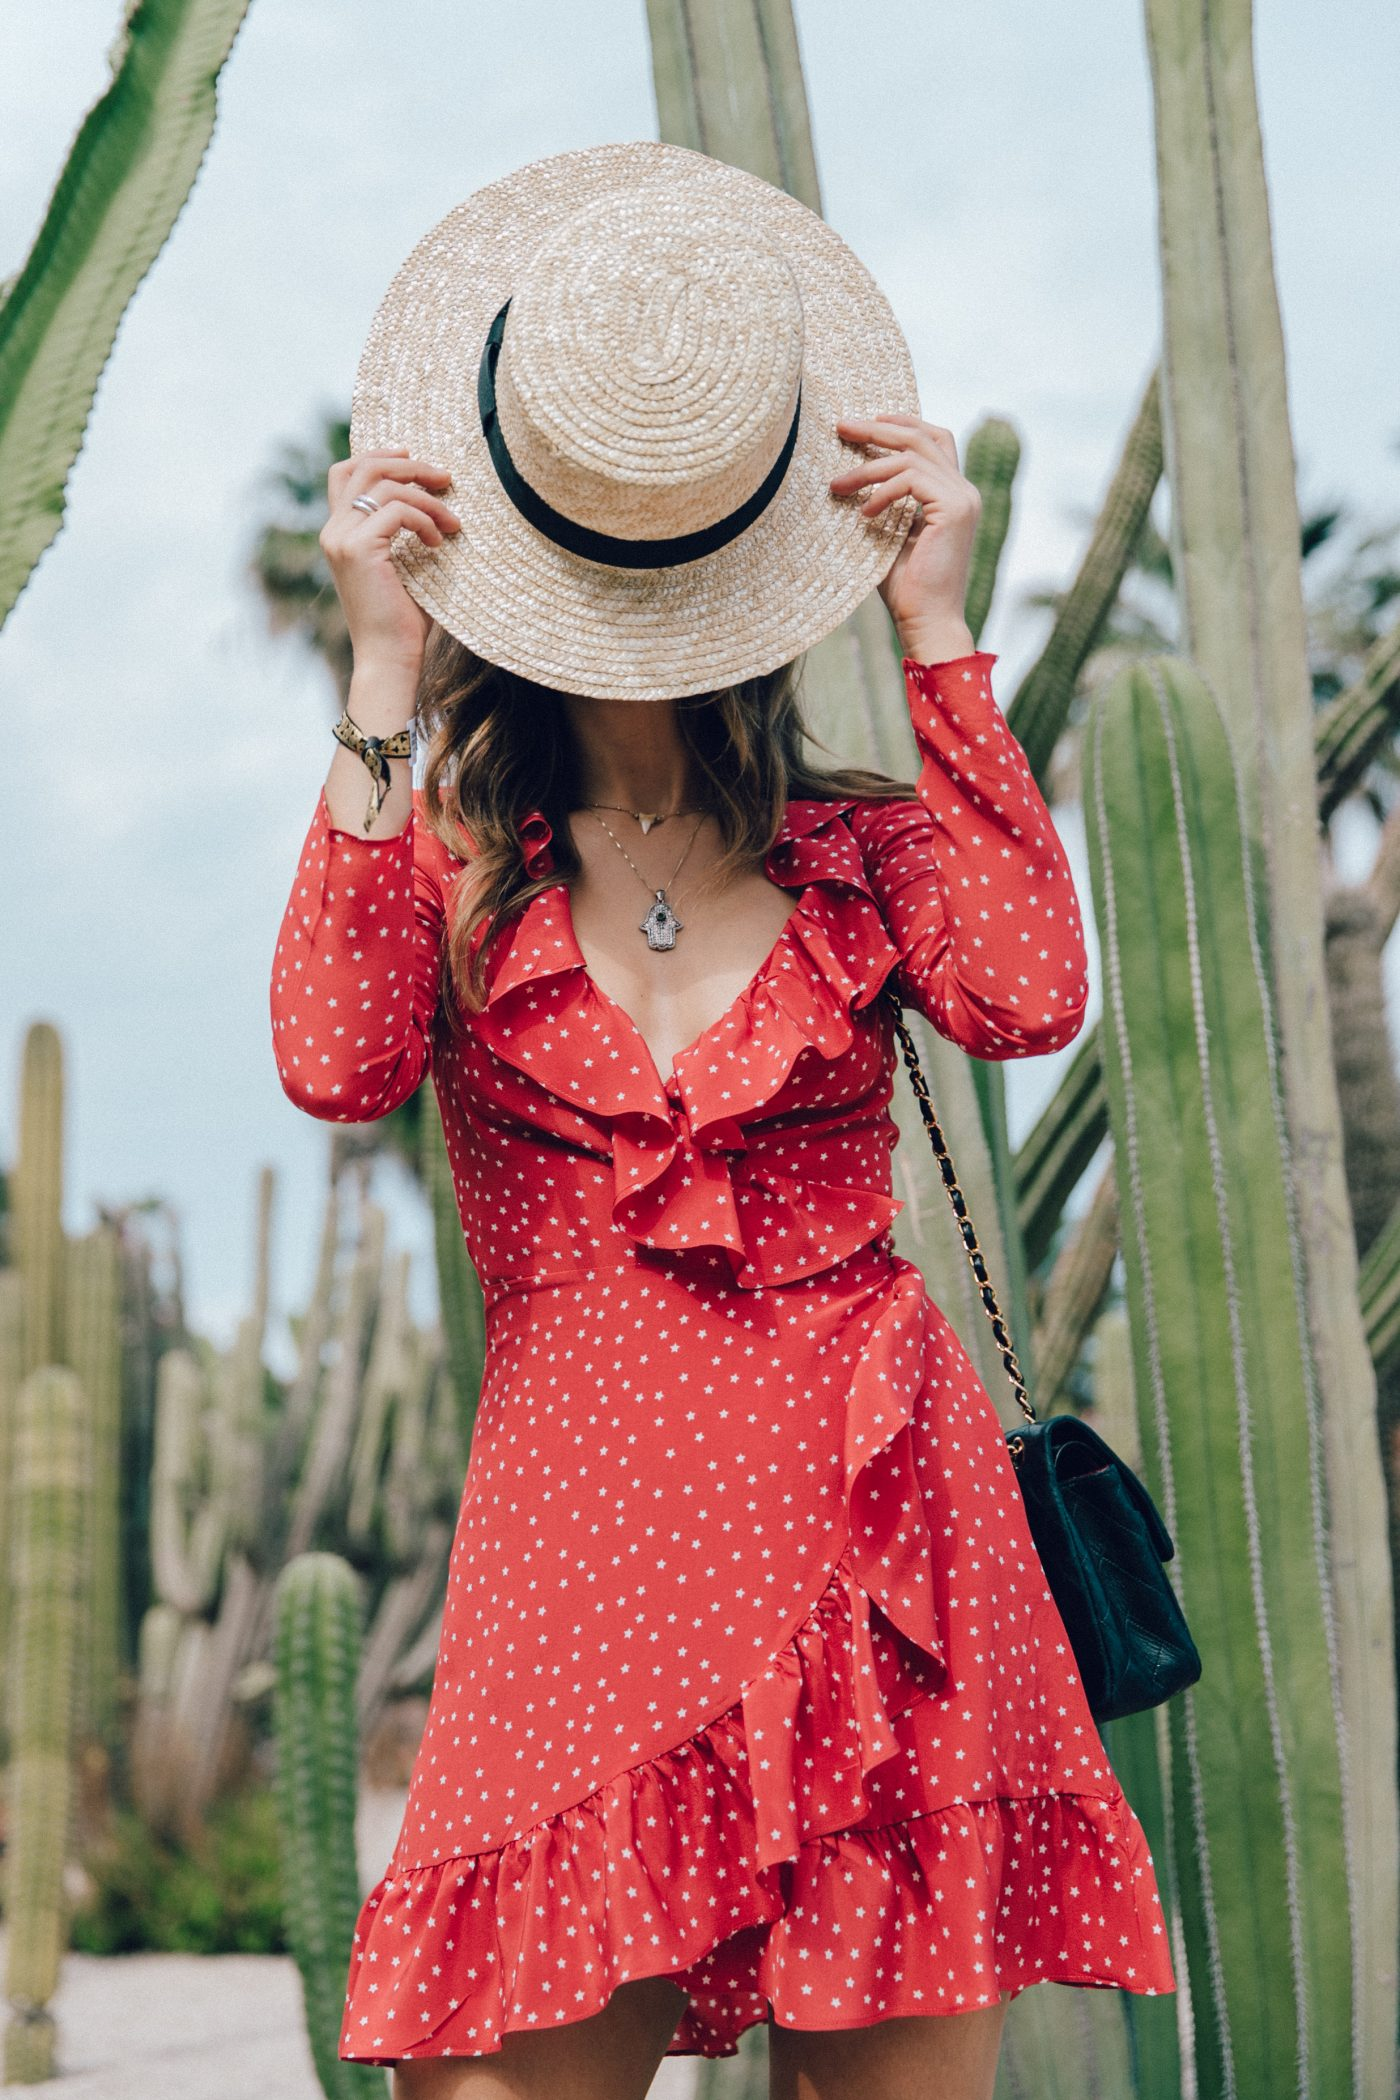 Realisation_Par_Dress-Star_Print-Red_Dress-Outfit-Catonier-Hat-Lack_Of_Color-Black_Sandals_Topshop-Barcelona-Collage_Vintage-Mossen_Gardens-64